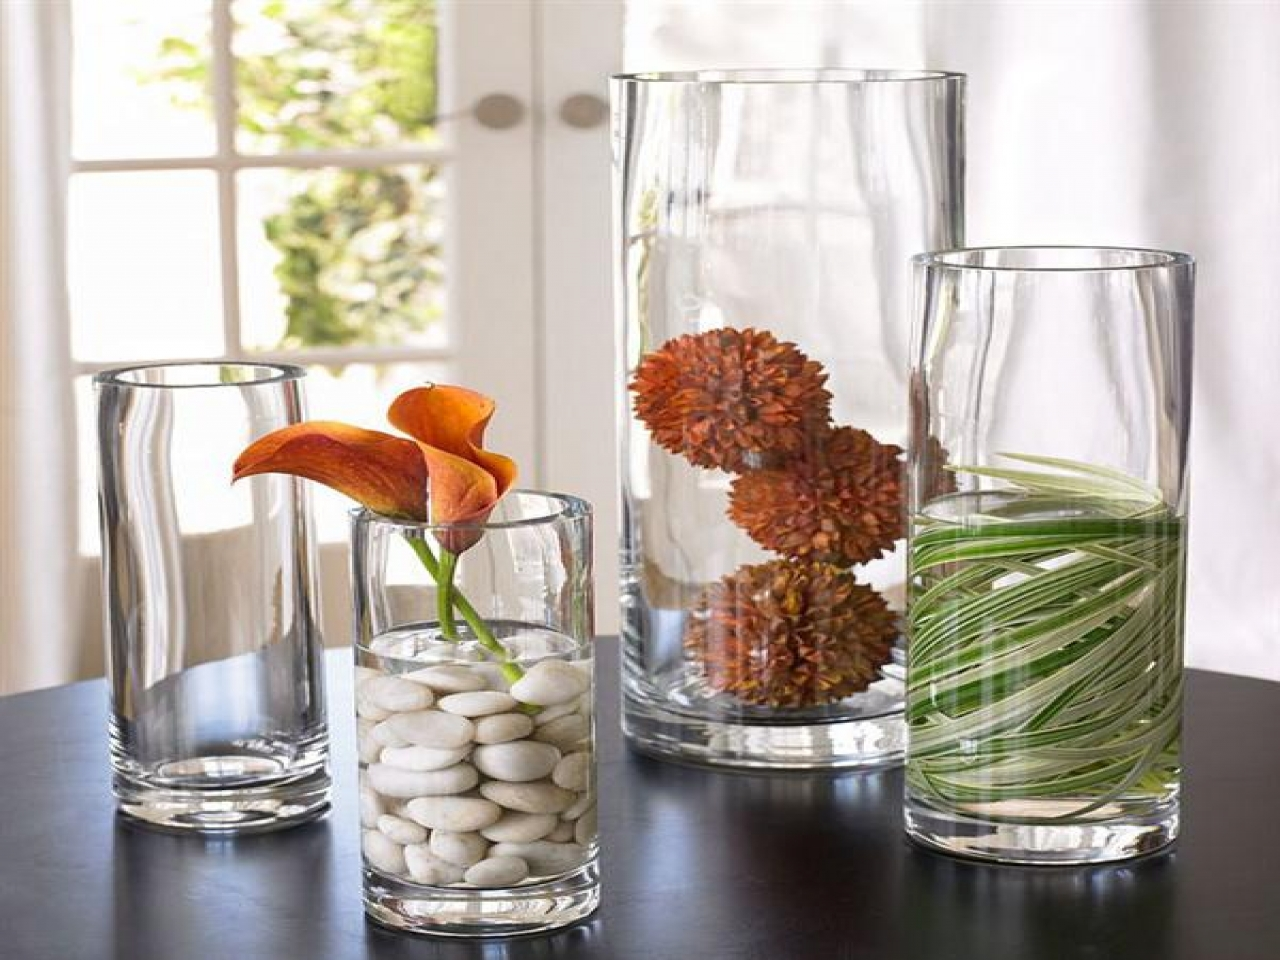 vase-table-centerpieces-decoration-ideas-decorating-ideas-with-glass-vases-66ace22707230959_1484730296.jpg